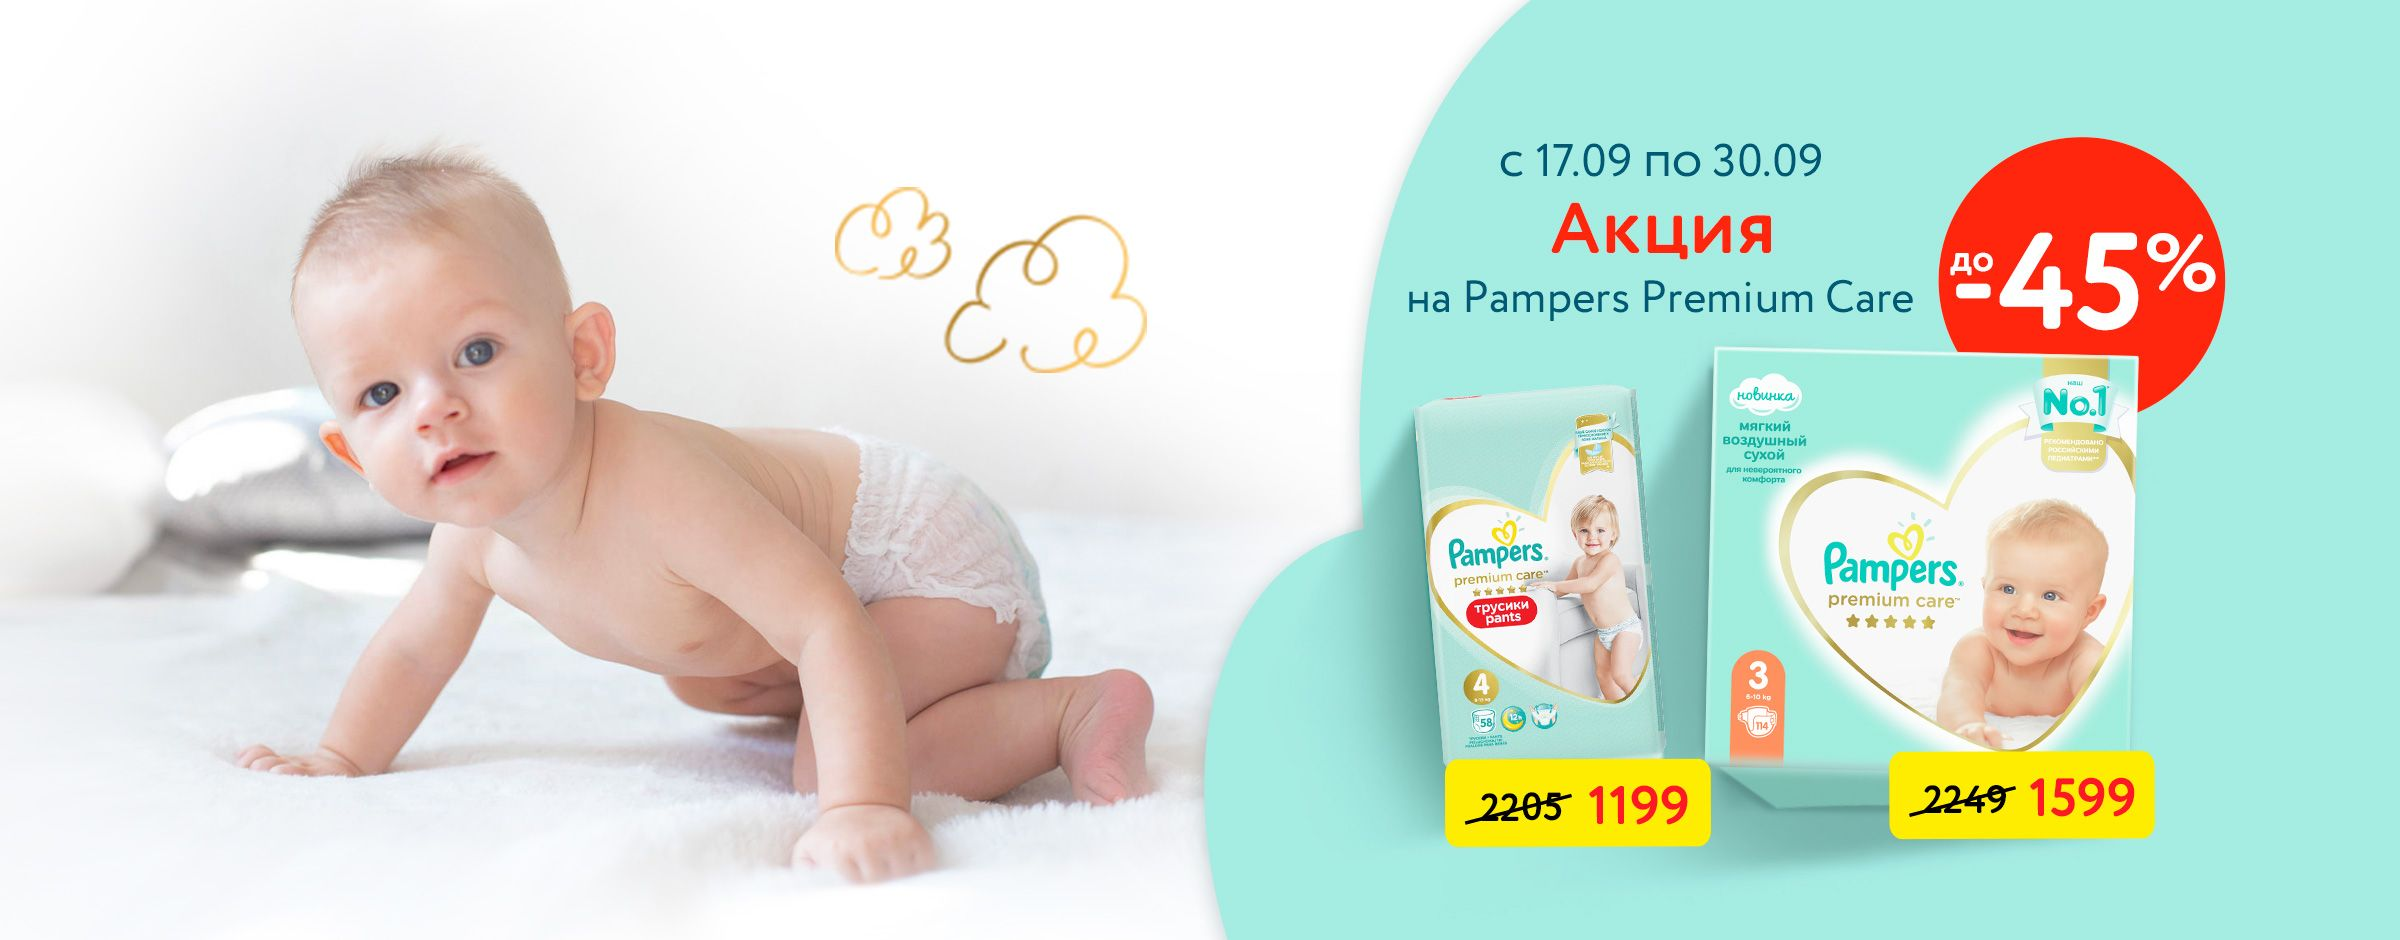 До 45% на Pampers premium care Питание